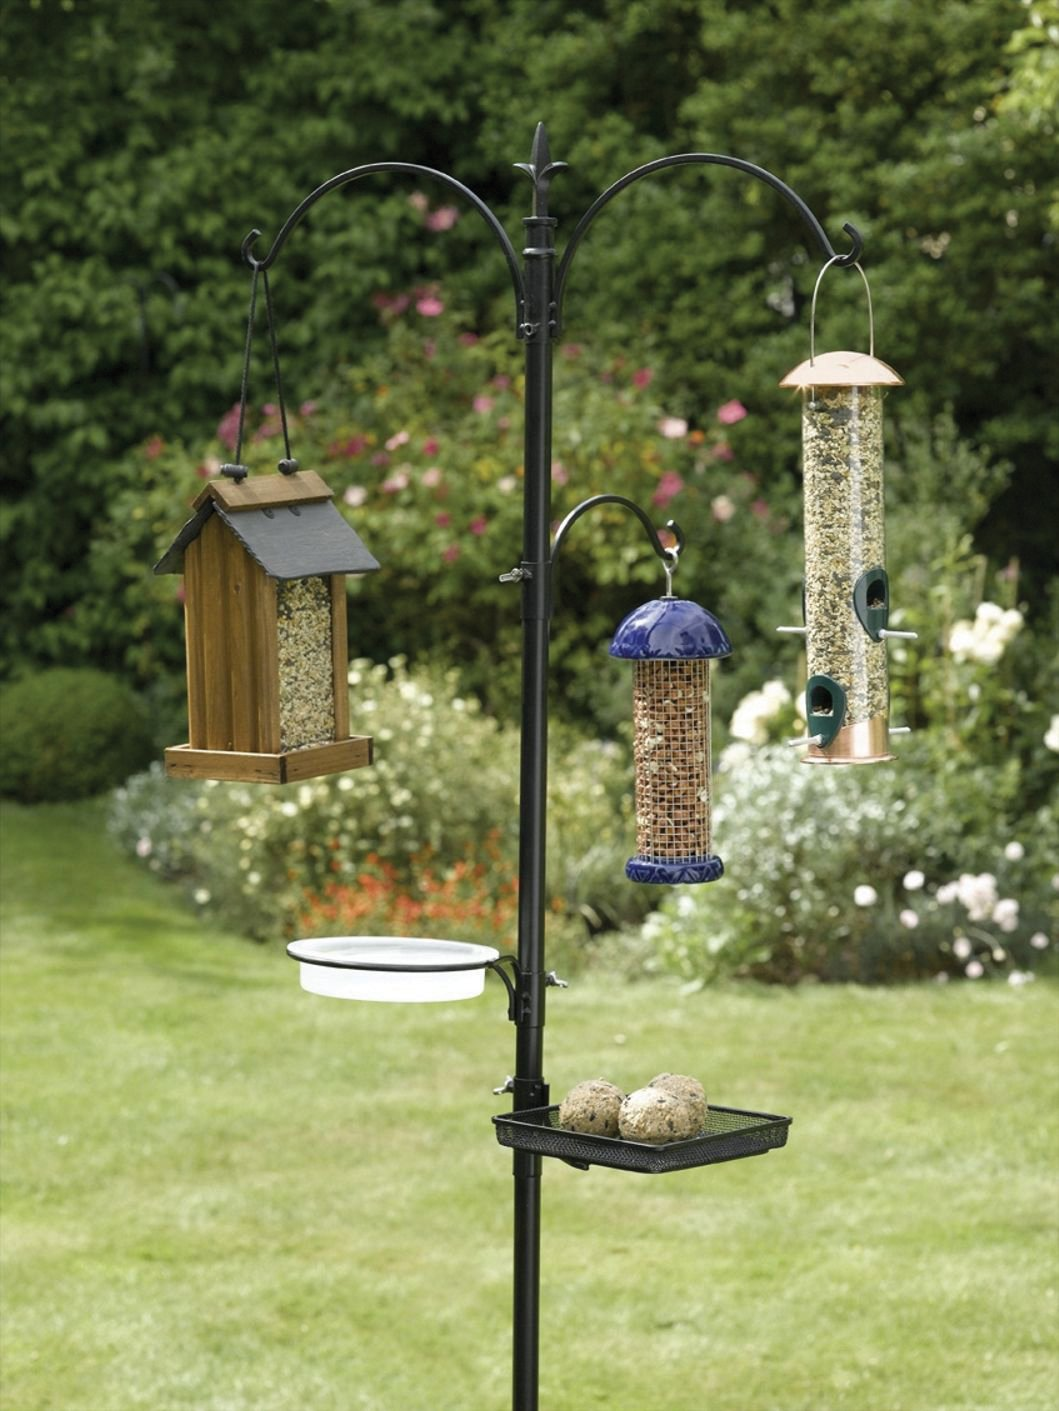 Gardman Wild Bird Feeding Kit